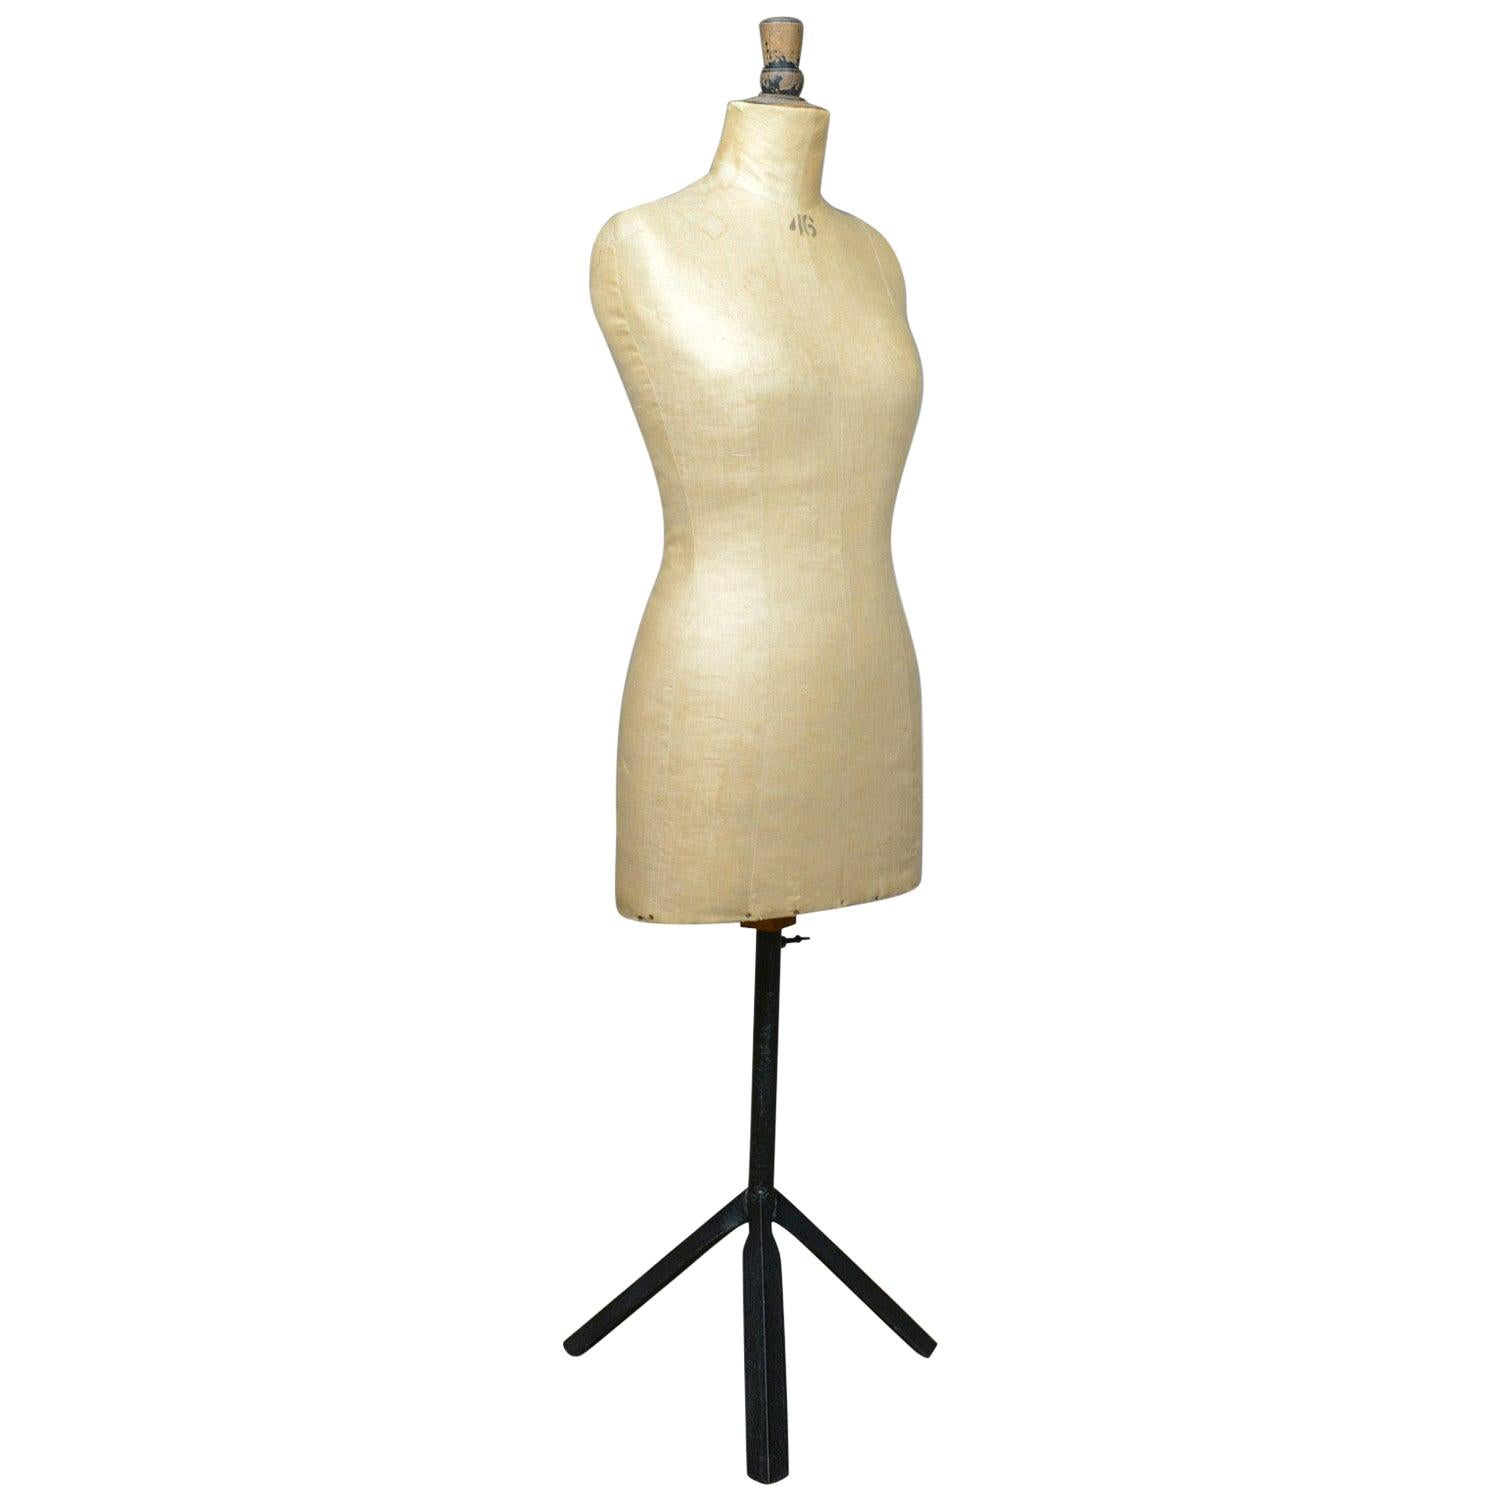 French Antique Dress Makers Dummy, Adjustable Height, Three-Quarter, circa 1900